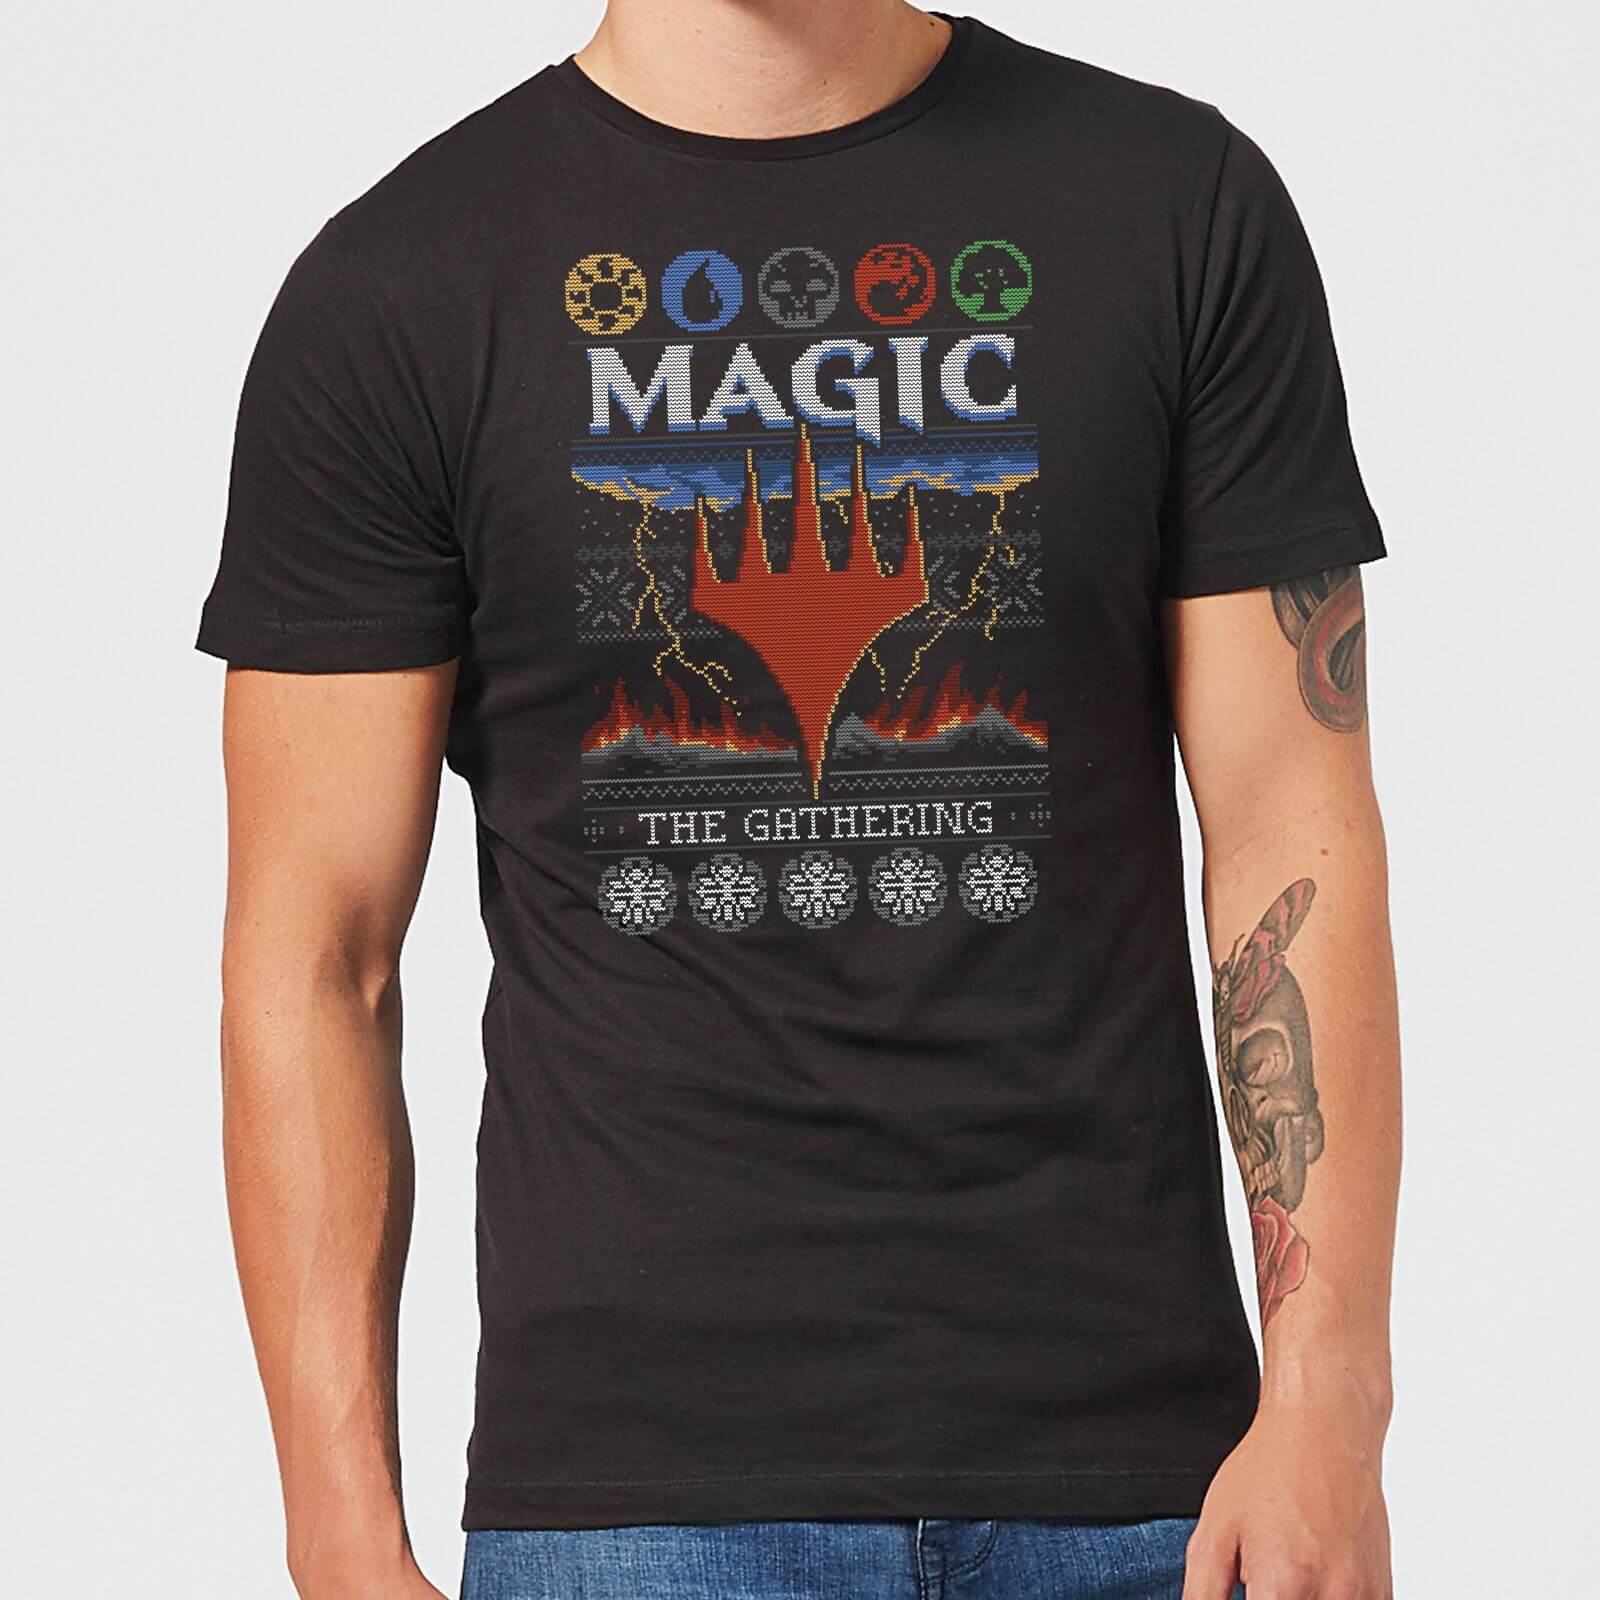 Magic: The Gathering Colours Of Magic Knit Herren Christmas T-Shirt - Schwarz - XS - Schwarz